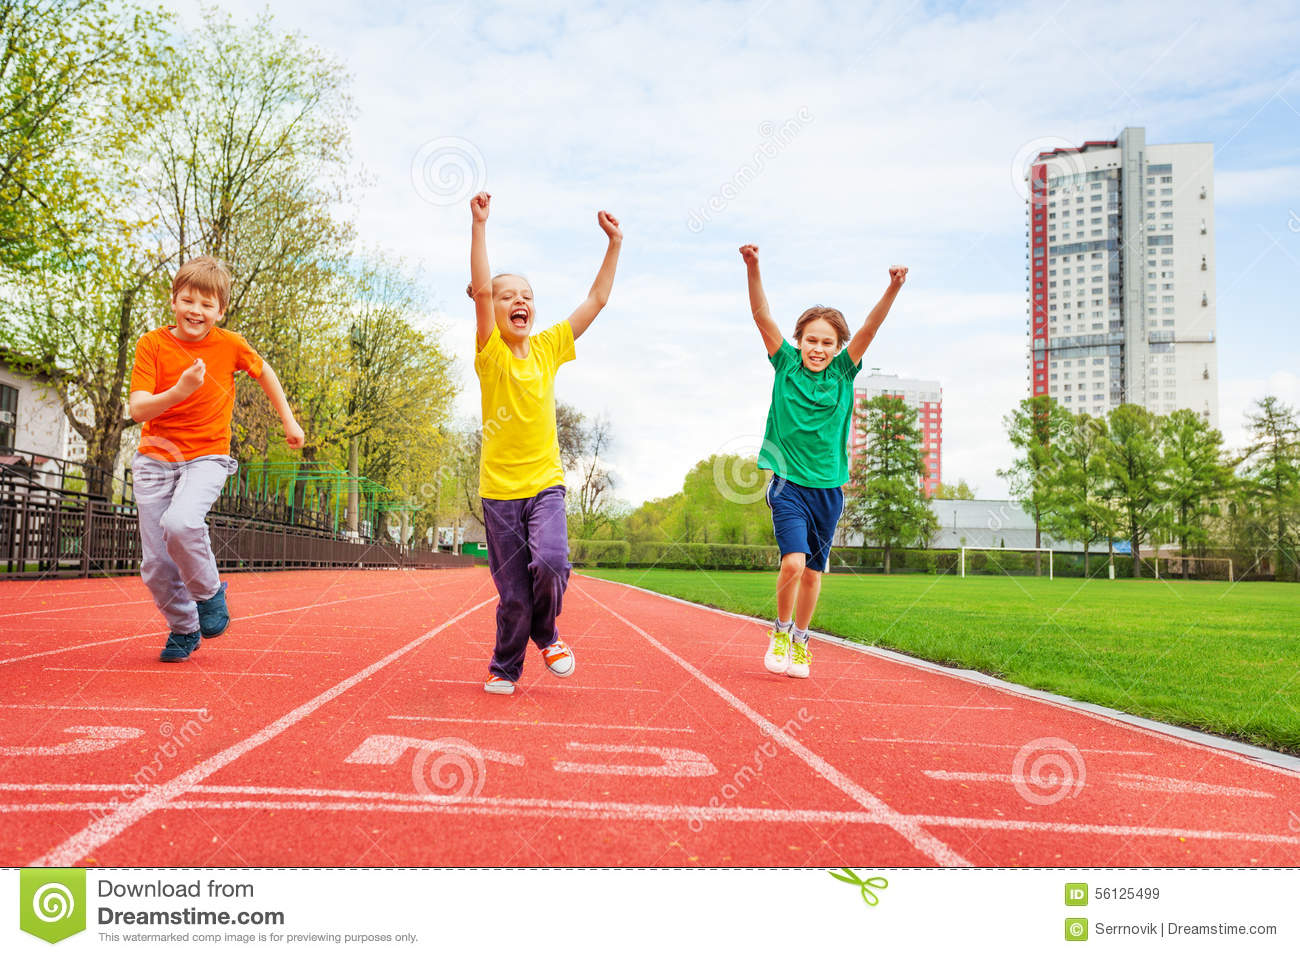 Kids in colorful uniforms with arms up running